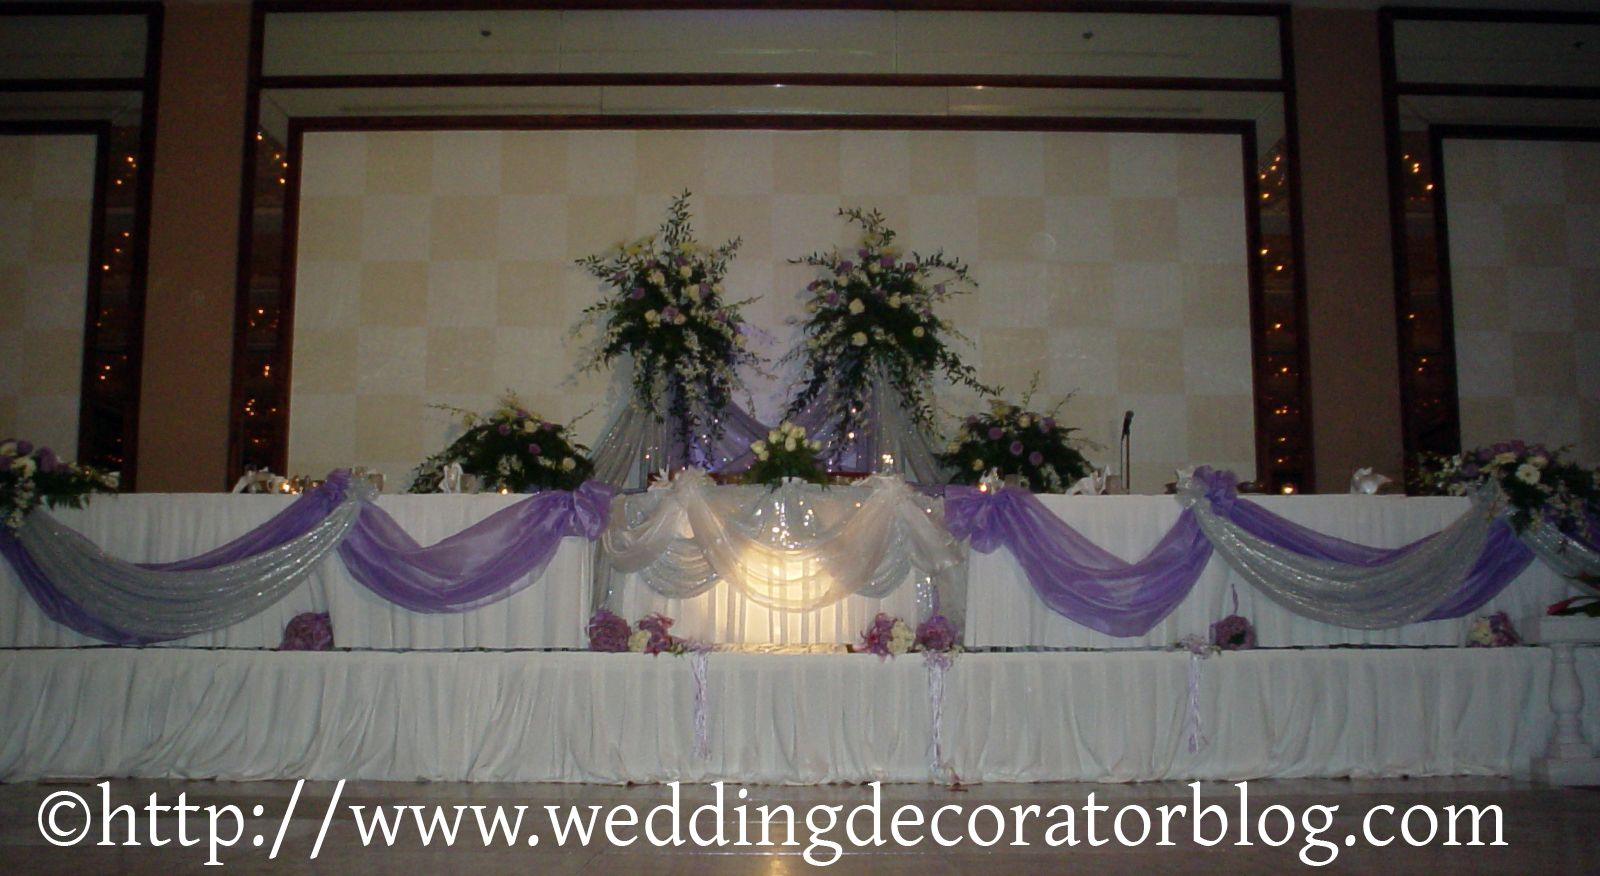 ideas for head tables. draping colored fabric over a colored table ...